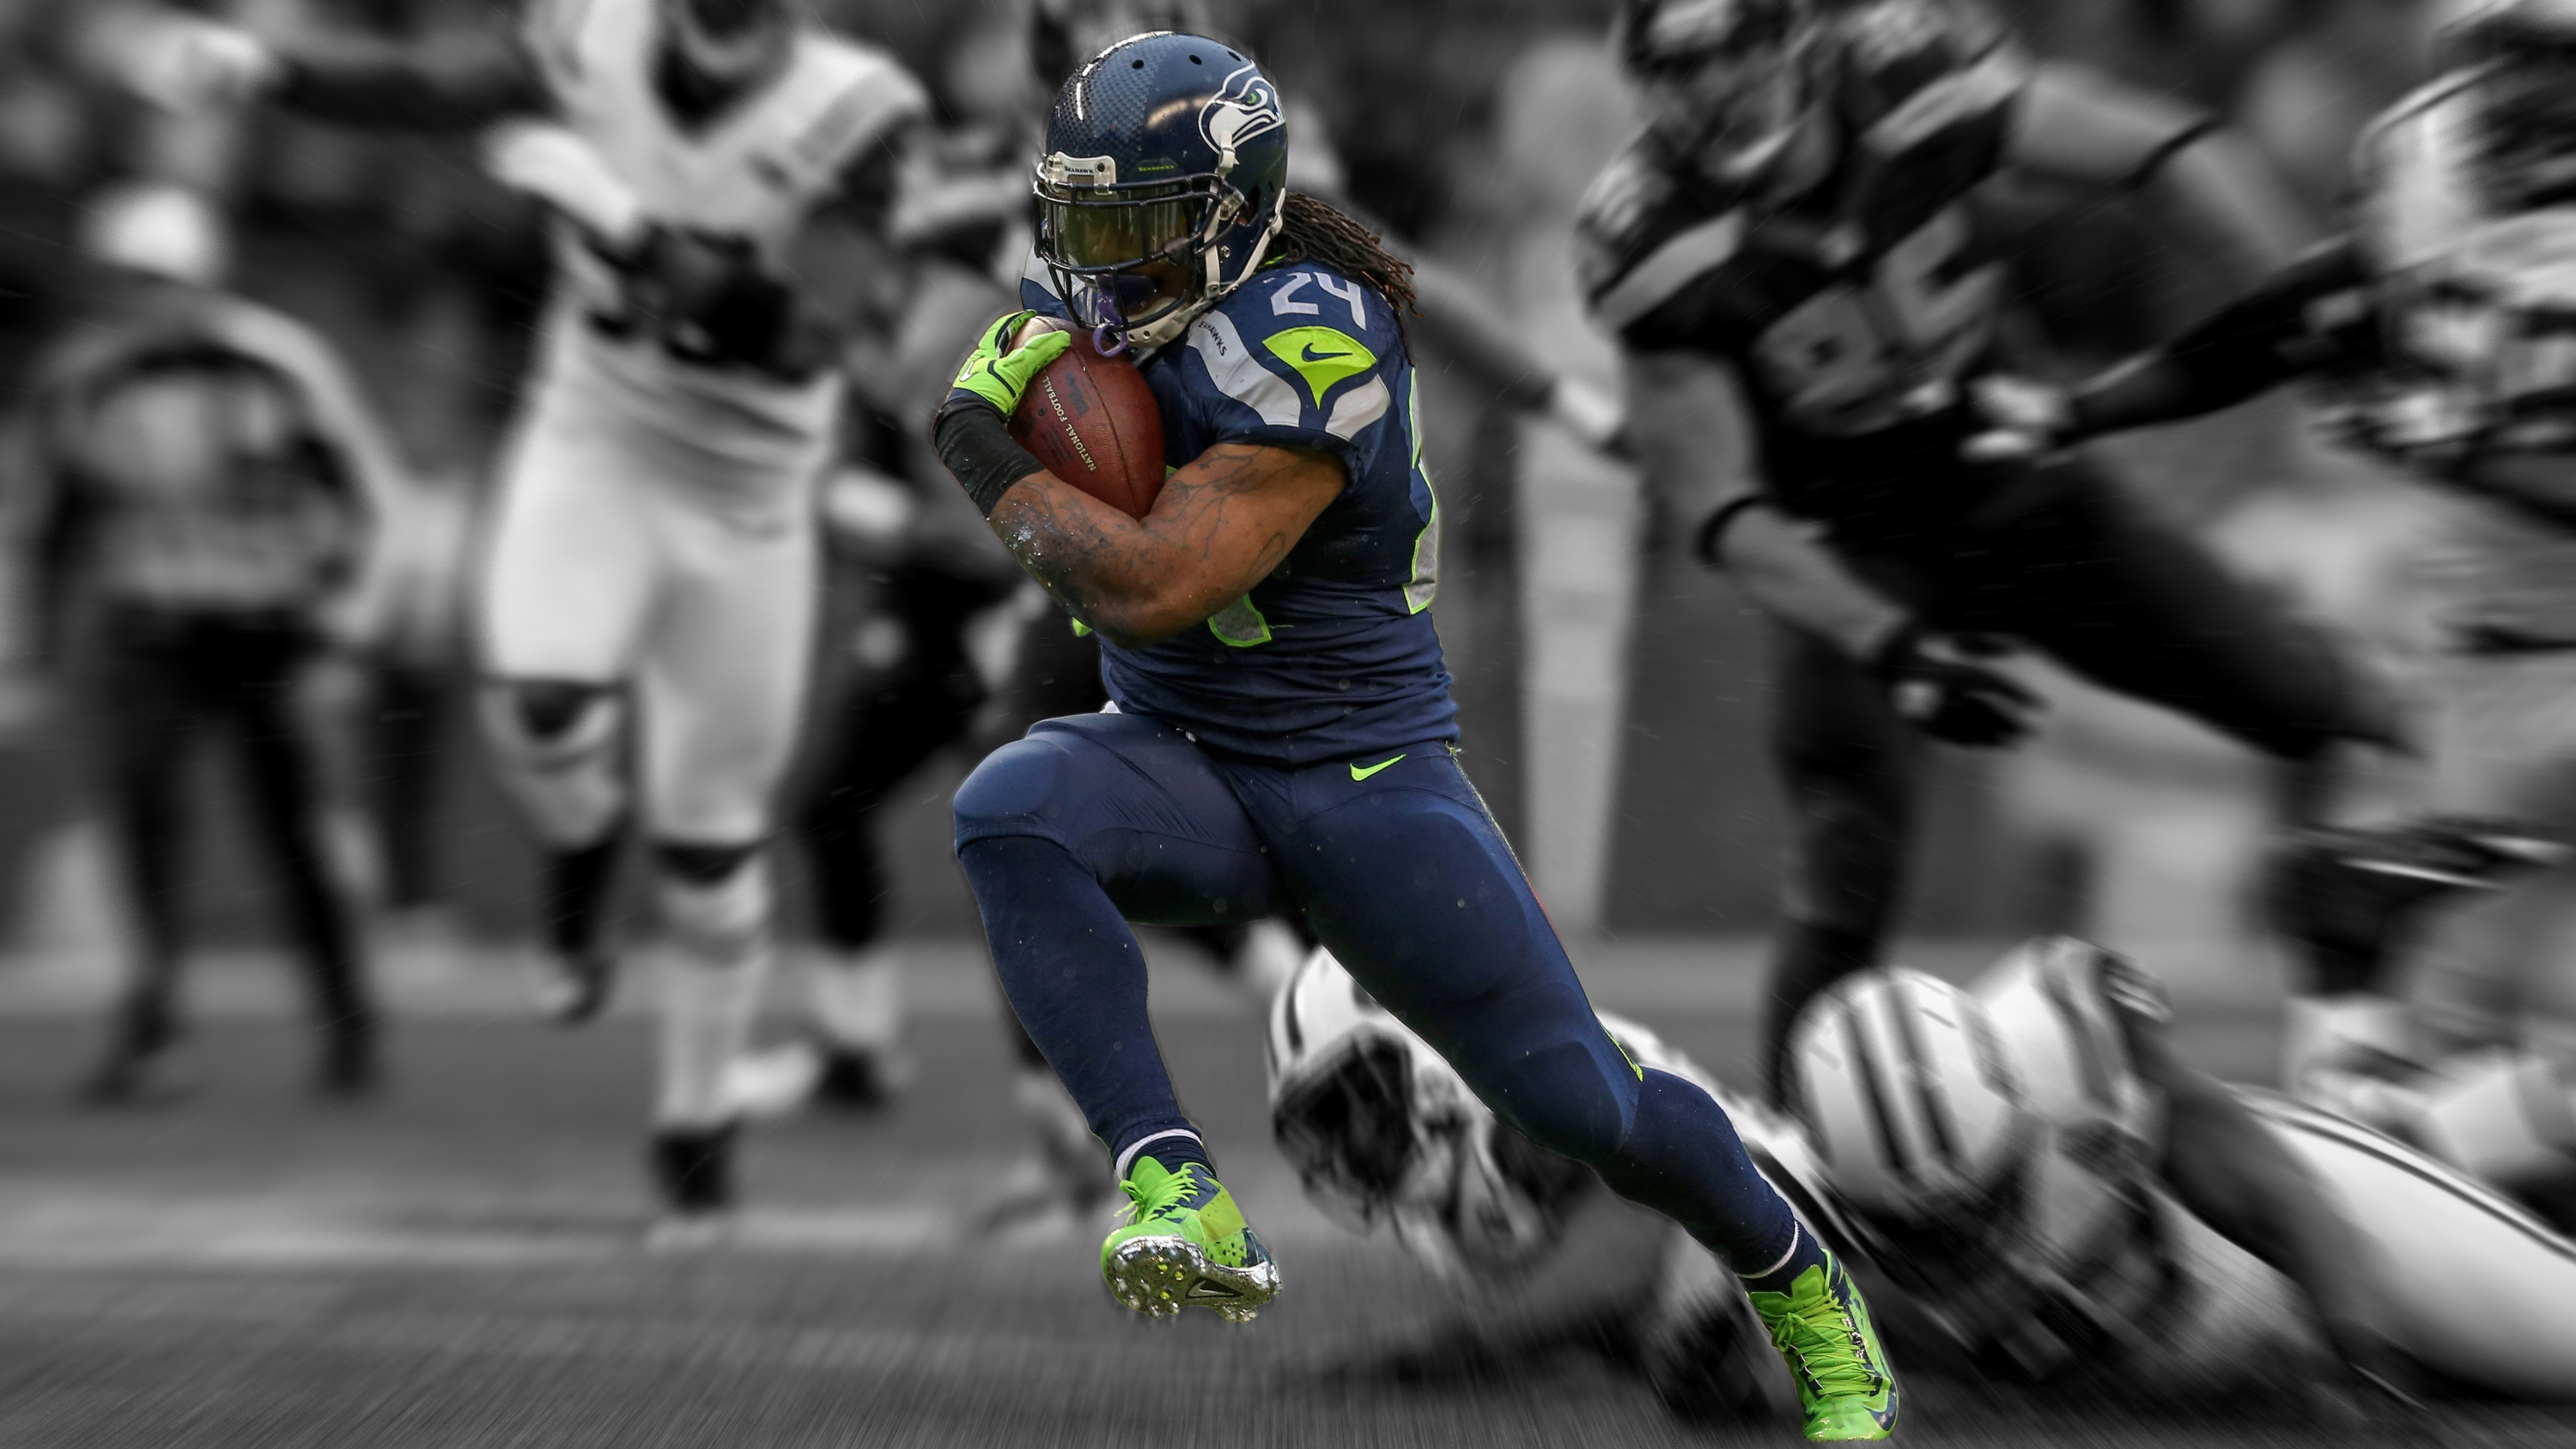 Marshawn Lynch Seahawks Wallpaper  NFL Photo 32784736  Fanpop